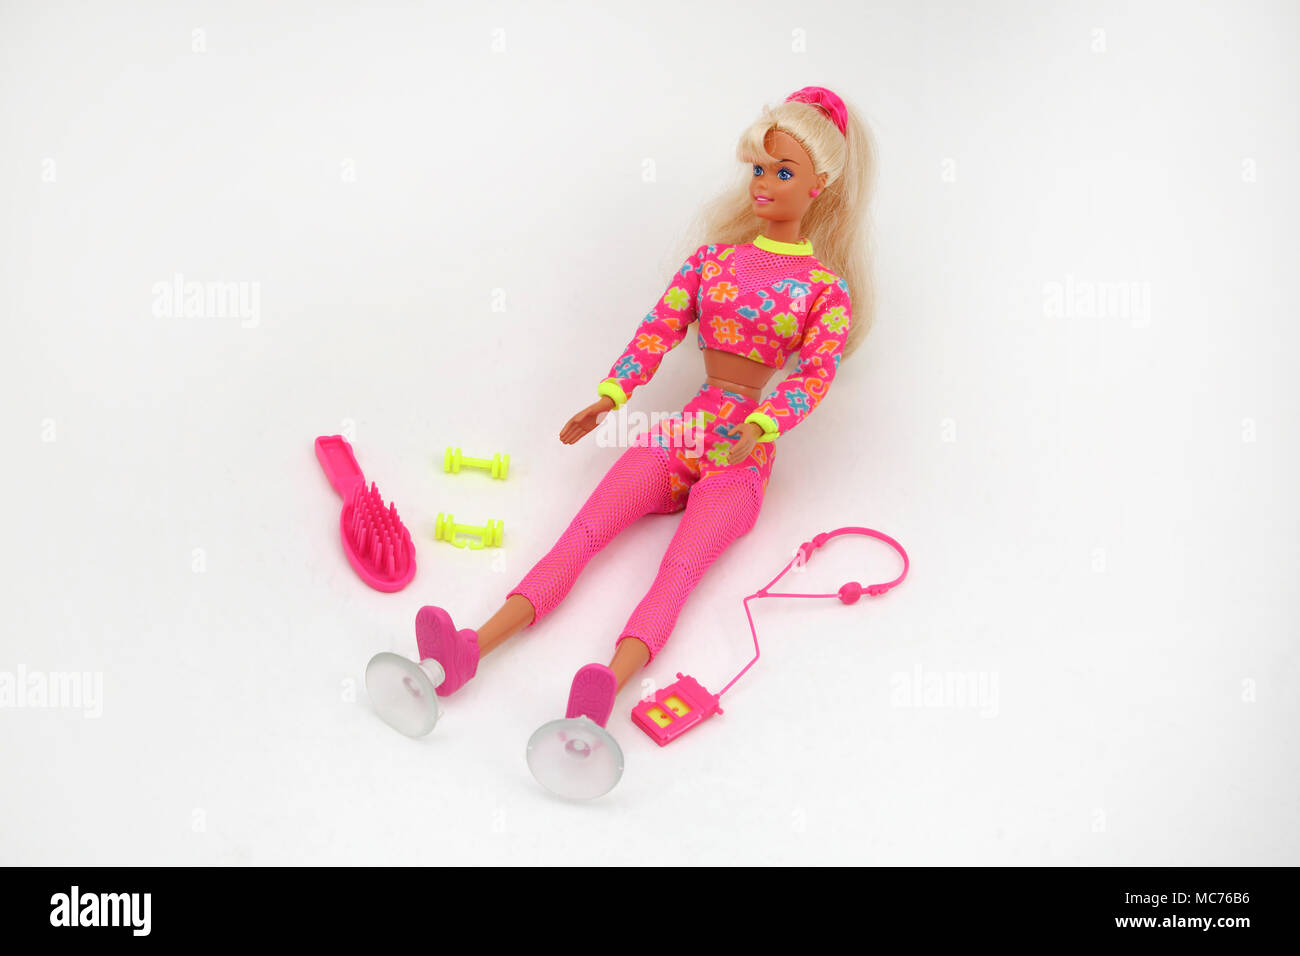 1996 Worki'n Out Barbie with Walkman, Dumb Bells and Brush - Stock Image